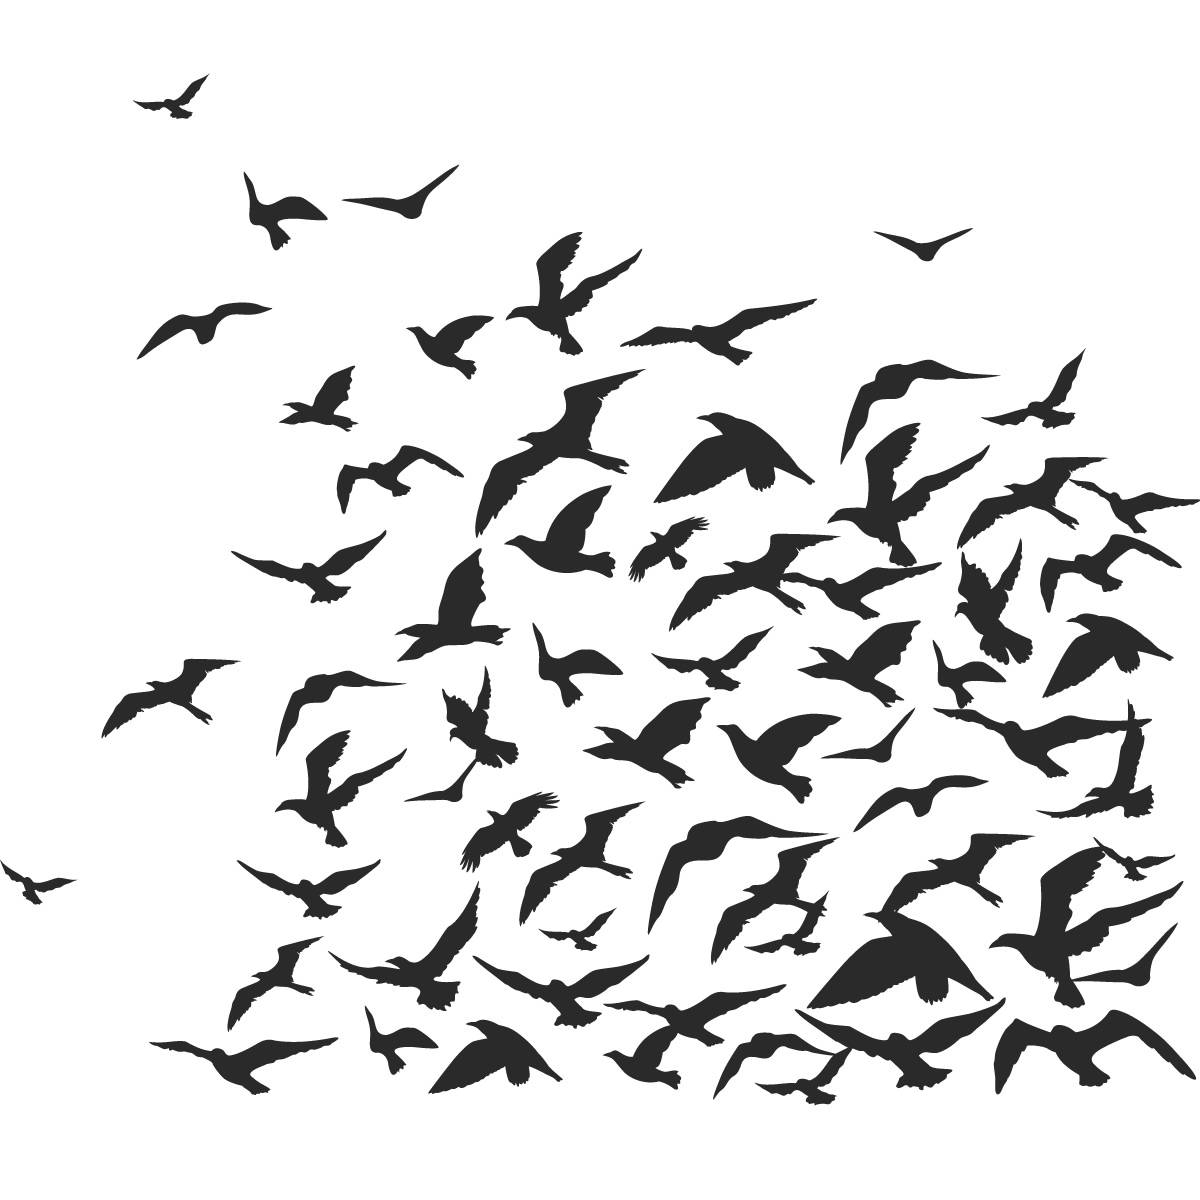 Amazing Sea Birds Wall Art Metal Flying Pigeon Bird Wall Wall For Current Flock Of Birds Metal Wall Art (View 4 of 30)